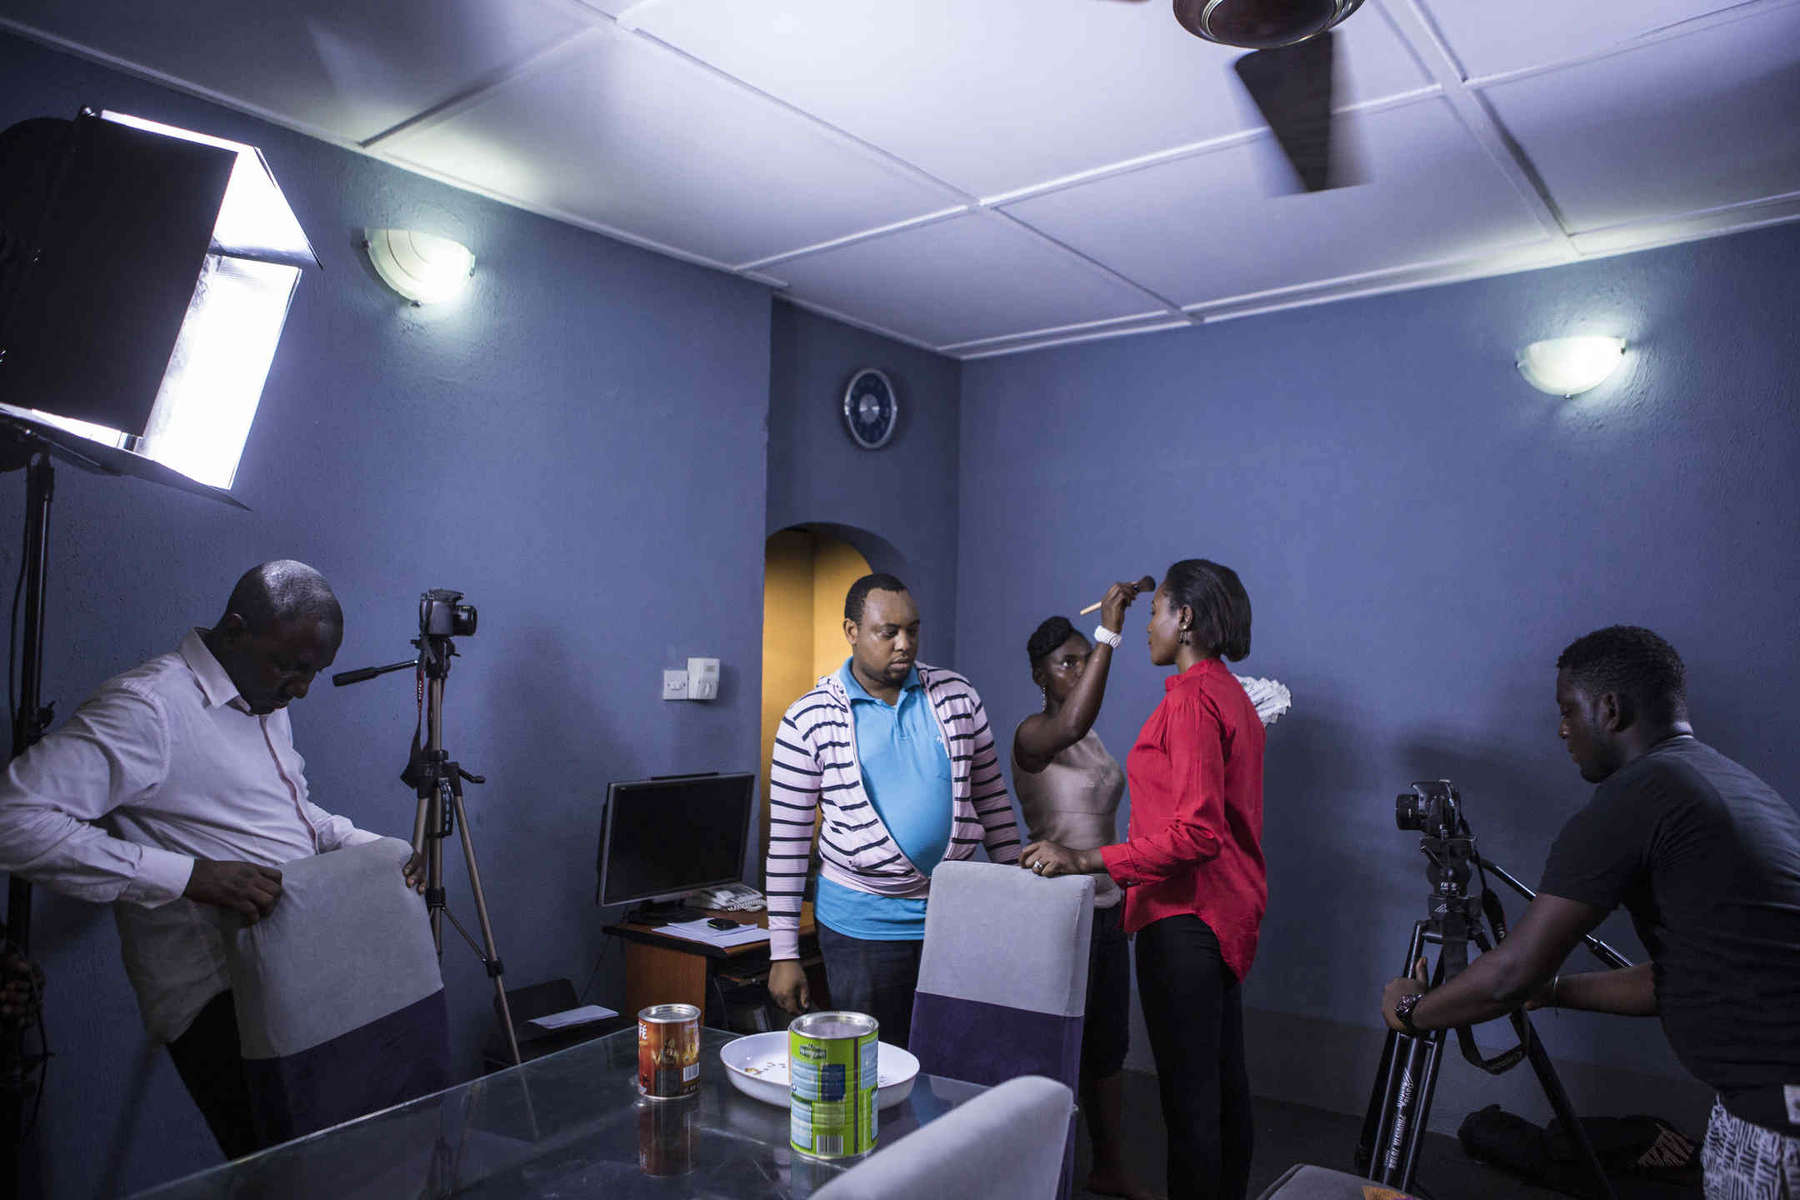 Though Nollywood is a giant industry, most movies are low budget and filmed in producer's homes or on cheap sets. Filming one scene for {quote}Rumor Has It{quote} took all day, with problems of electricity and other disturbances.